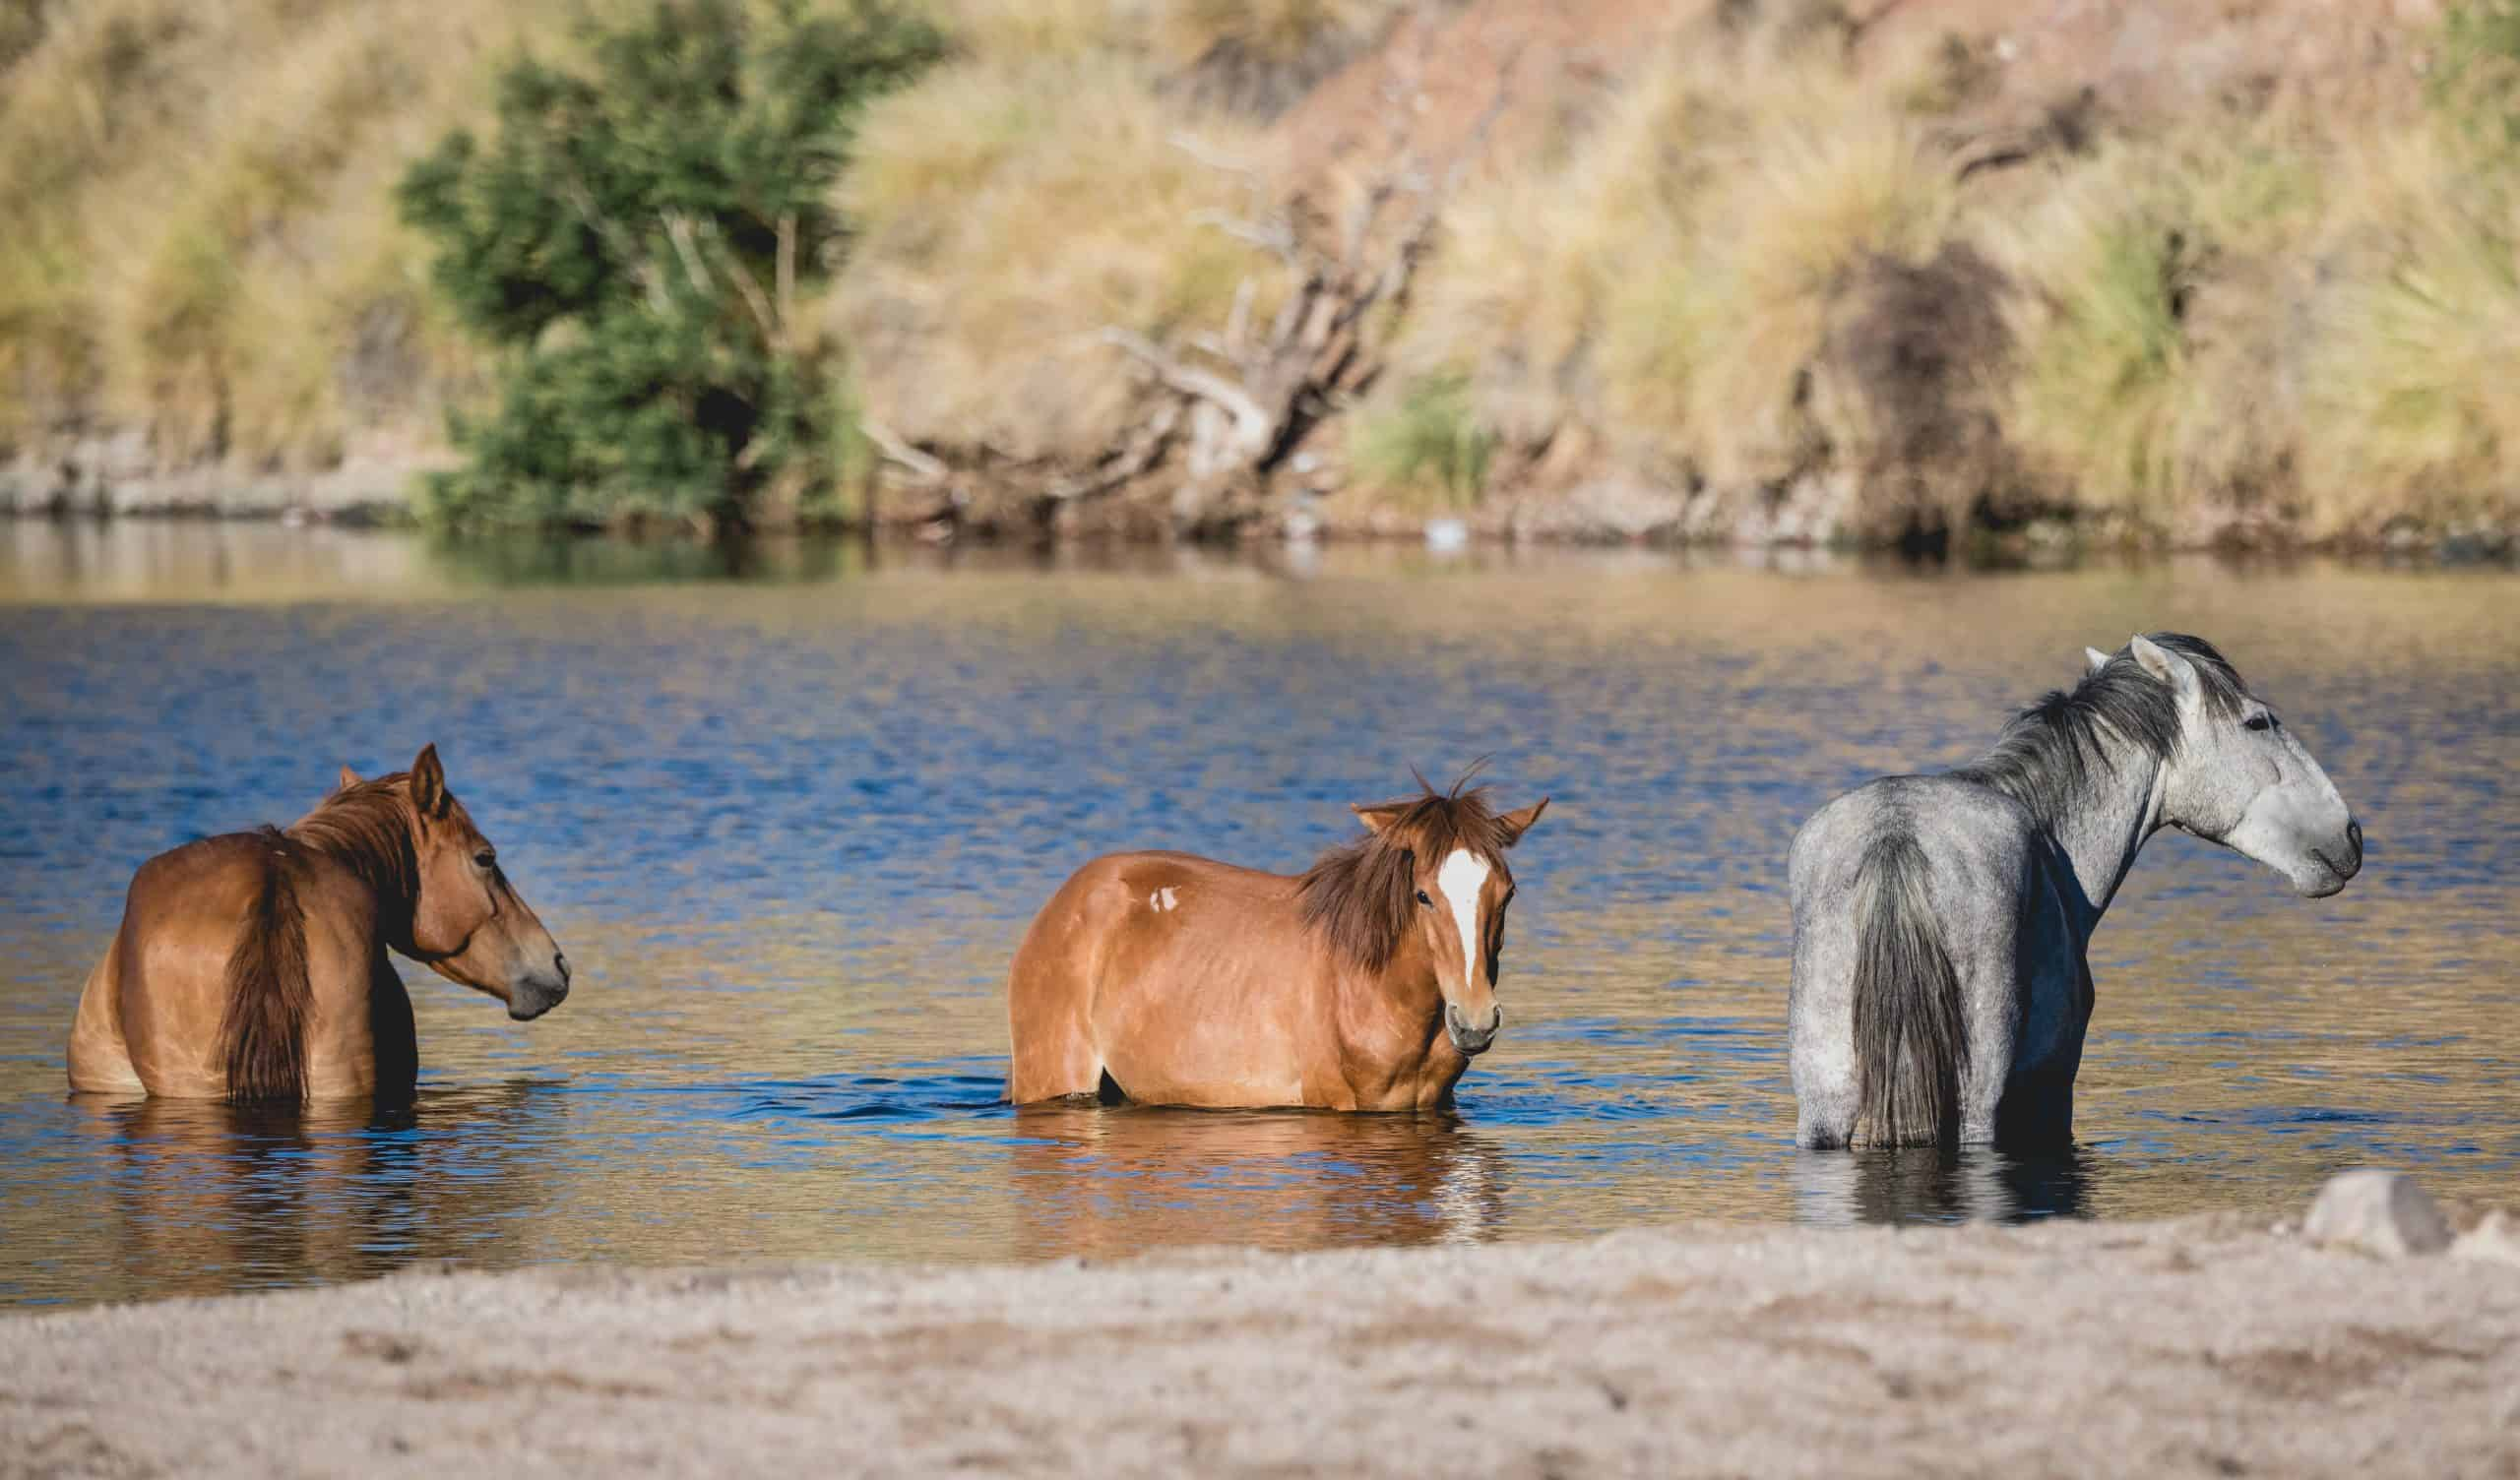 Salt River wild horses cooling off in the river